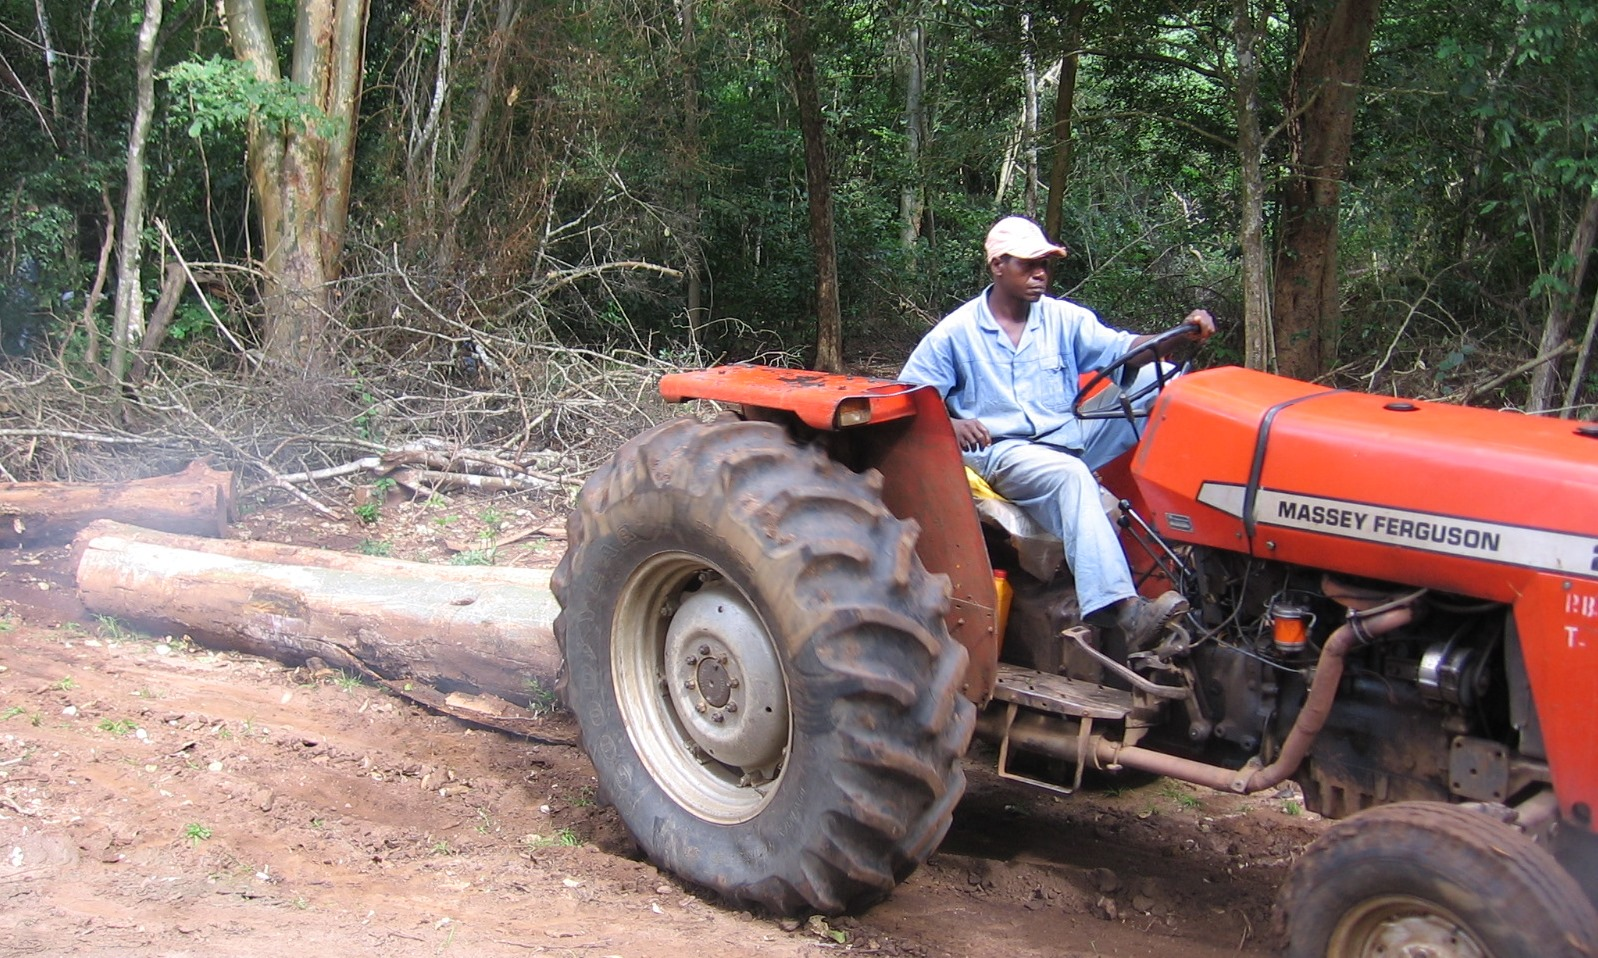 Extraction using small agricultural tractors to minimise impact